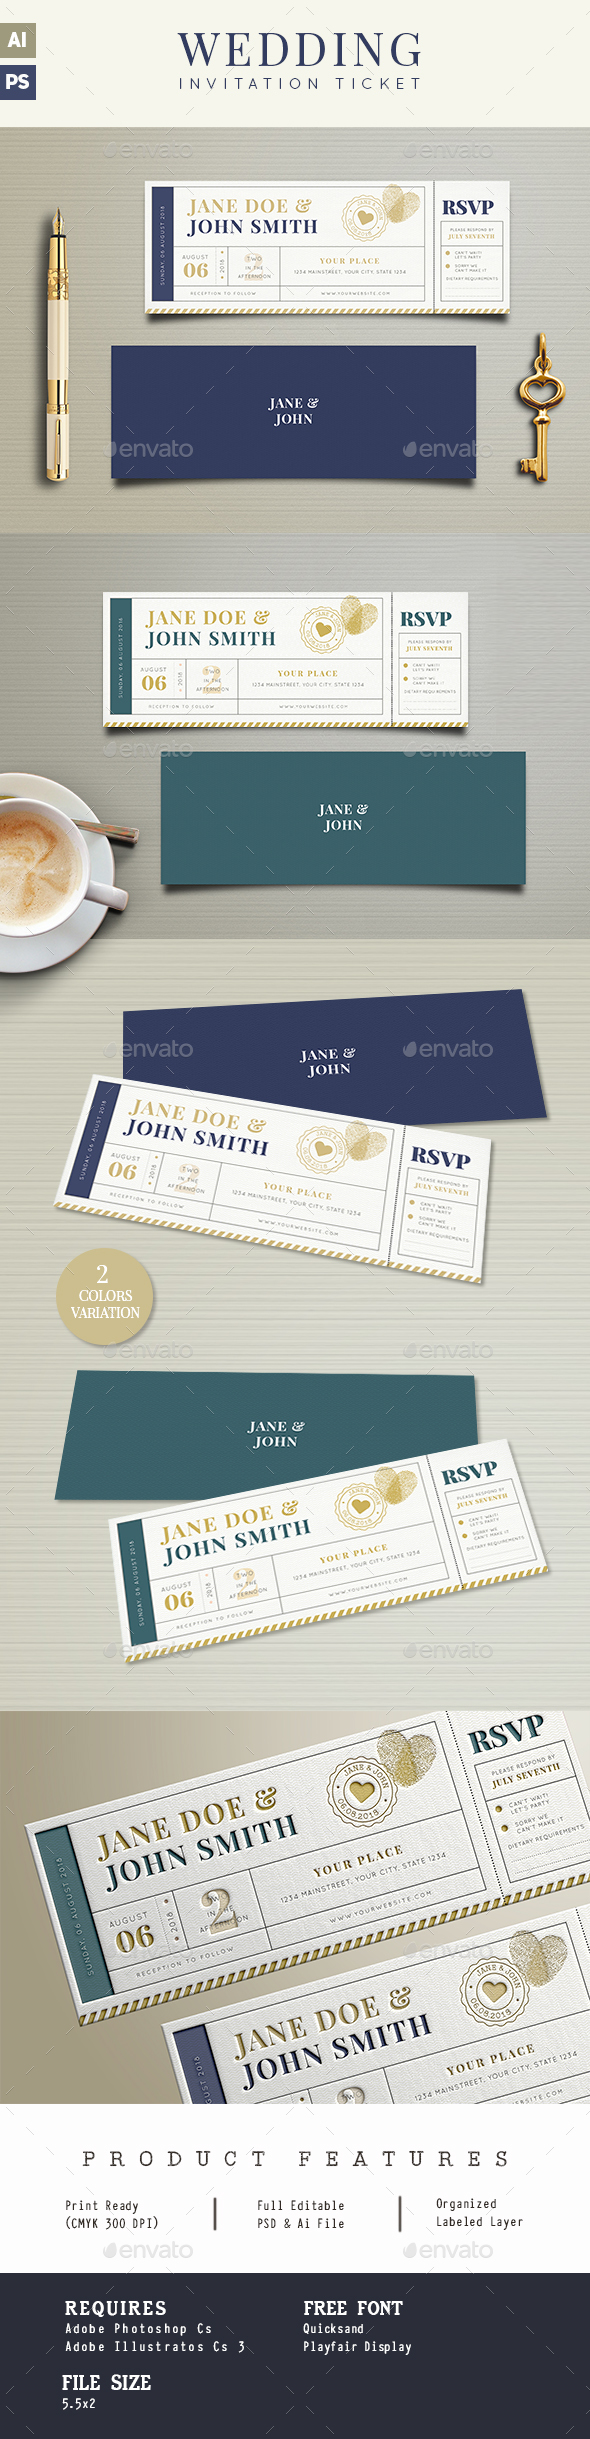 Wedding Invitation Ticket - Wedding Greeting Cards